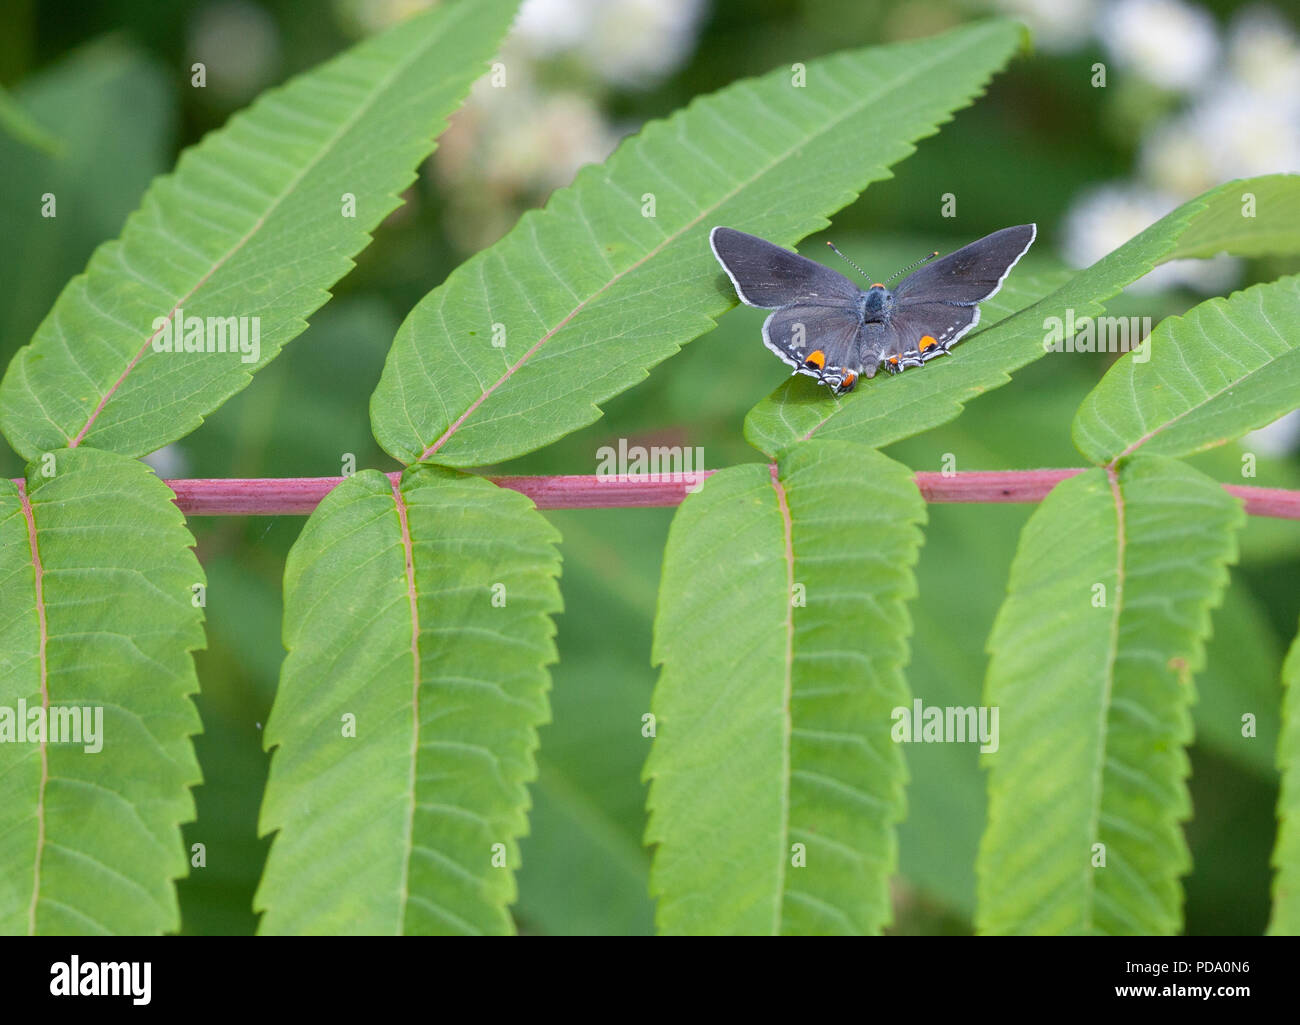 A Gray Hairstreak (Strymon melinus) butterfly perches with its wings open on some sumac leaves - Stock Image